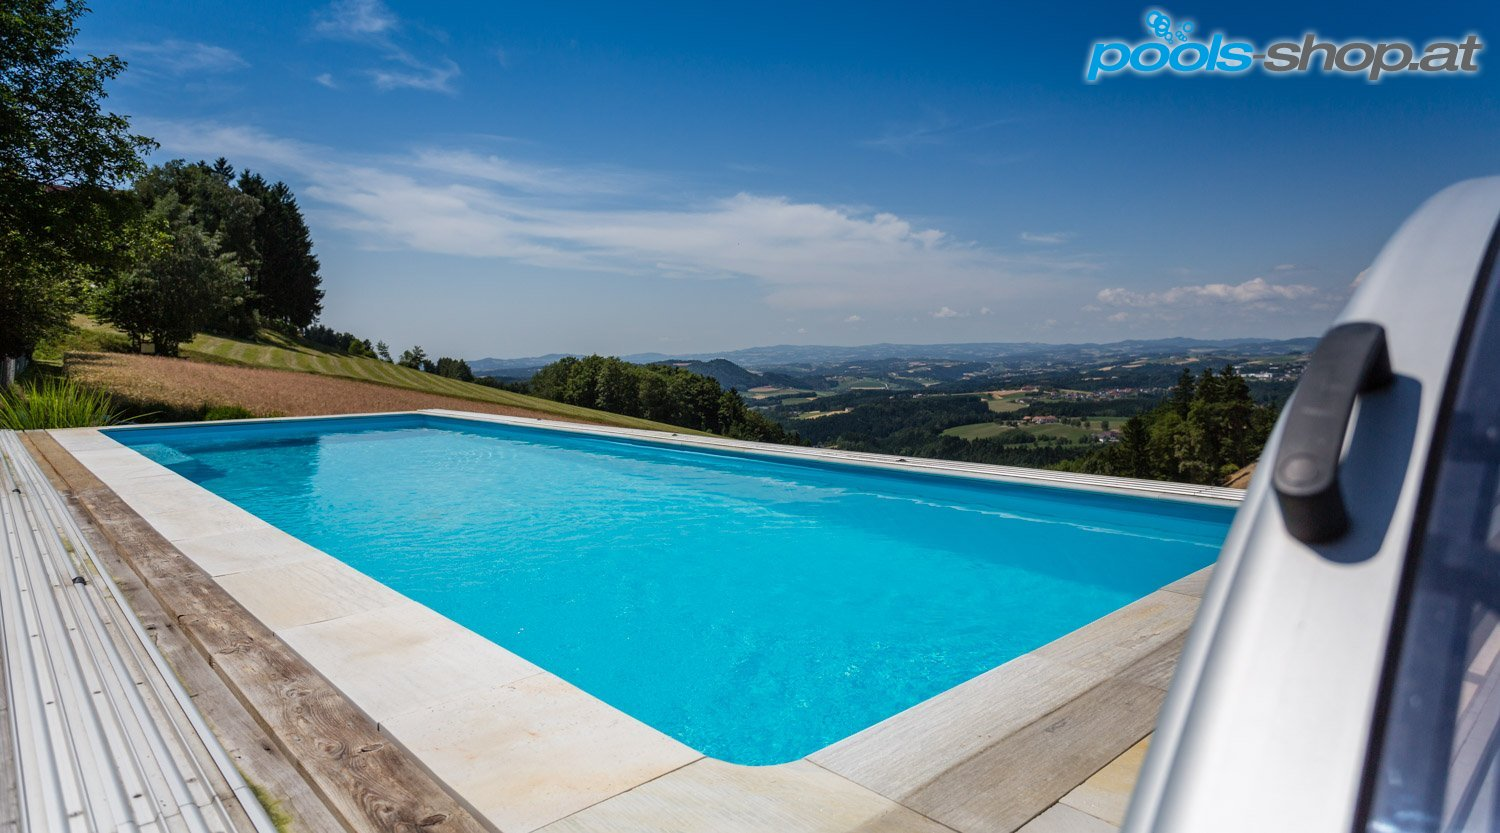 Pools shop pool selber bauen schwimmbad poolsauger for Schwimmbad shop